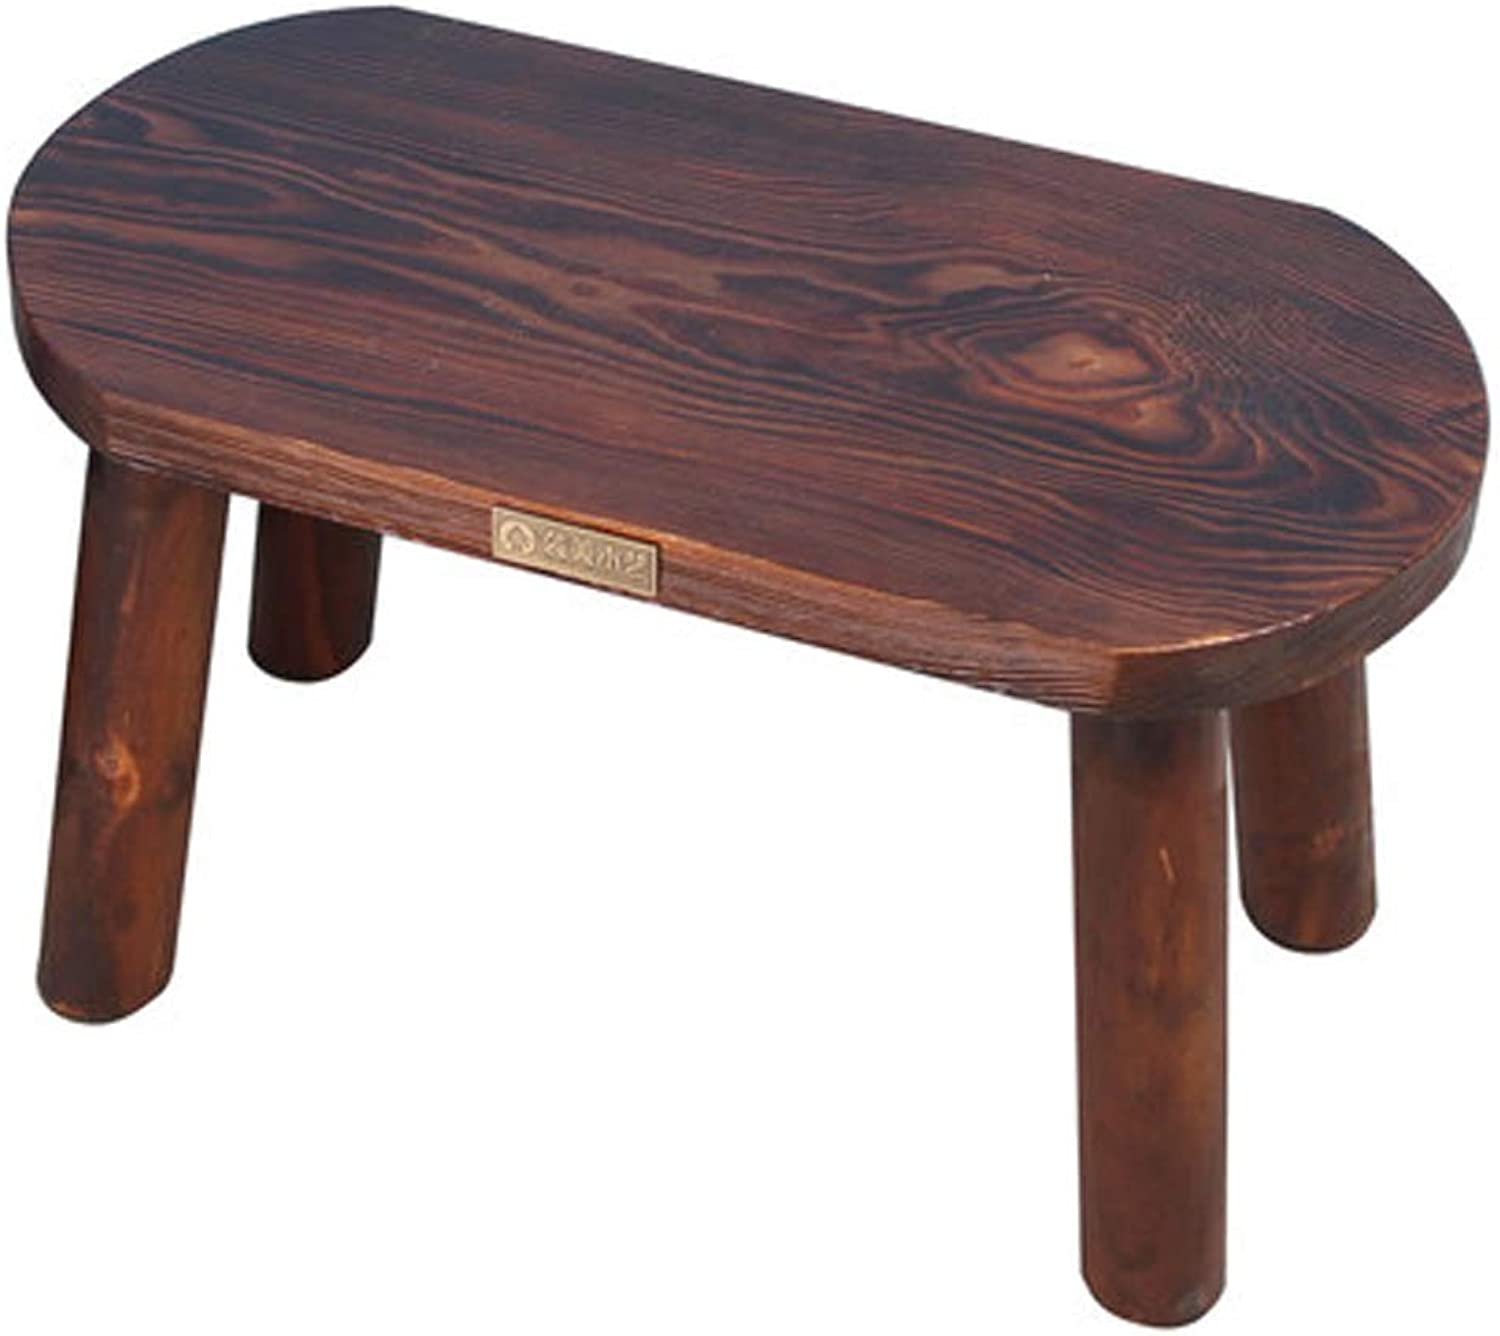 Solid Wood Stool, Elliptical Stool Coffee Table Stool Anti-Corrosion Stable and Wear-Resistant,A